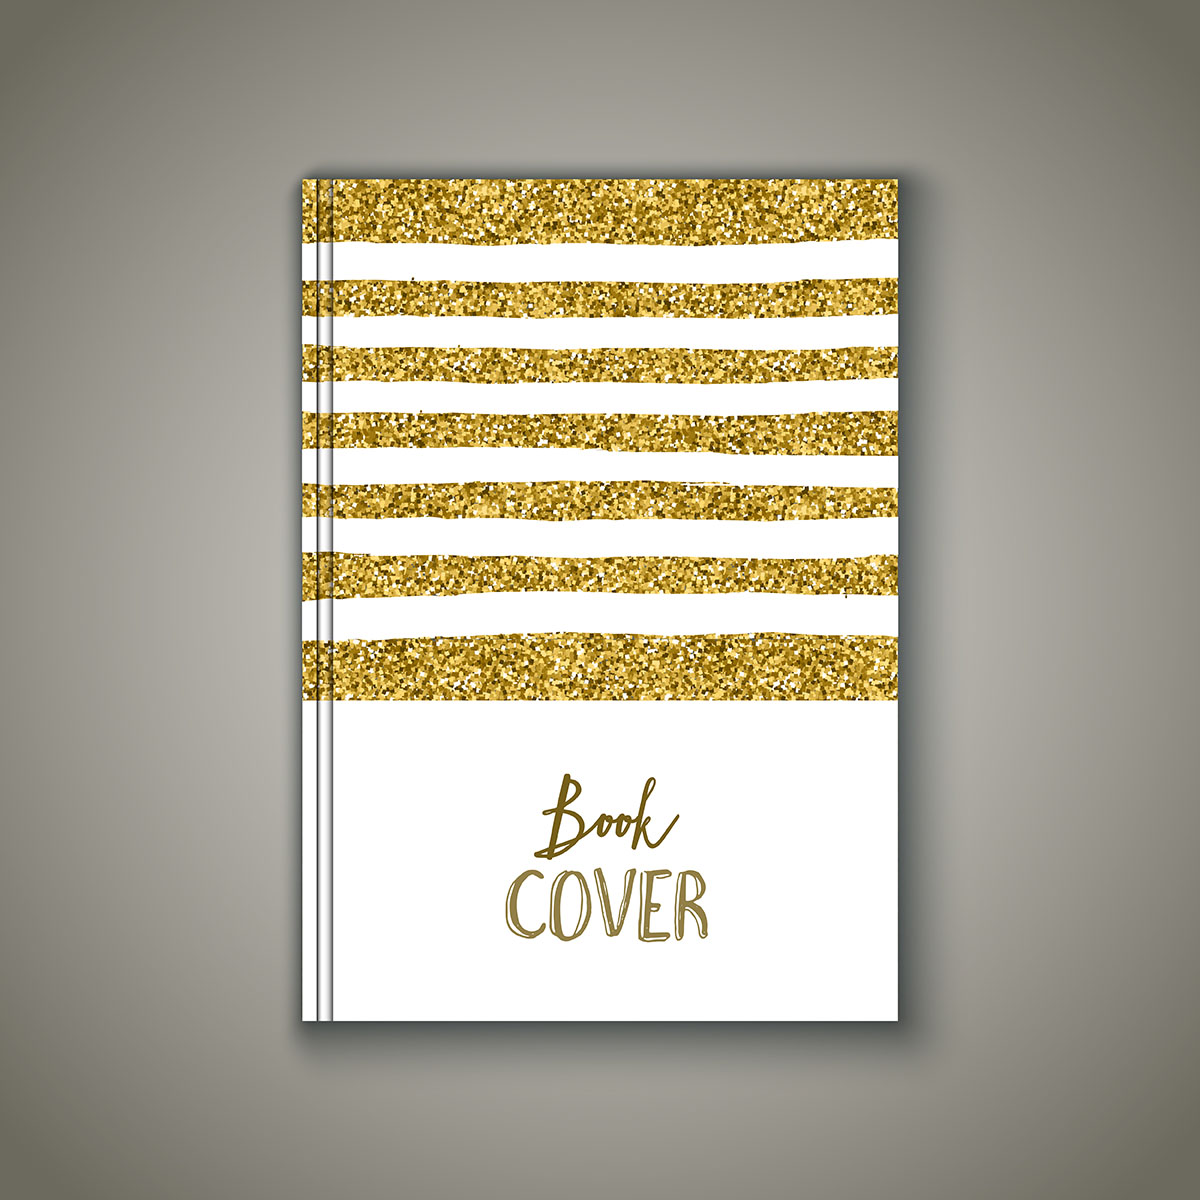 Book Cover Vector Art ~ Book cover with gold glittery design download free